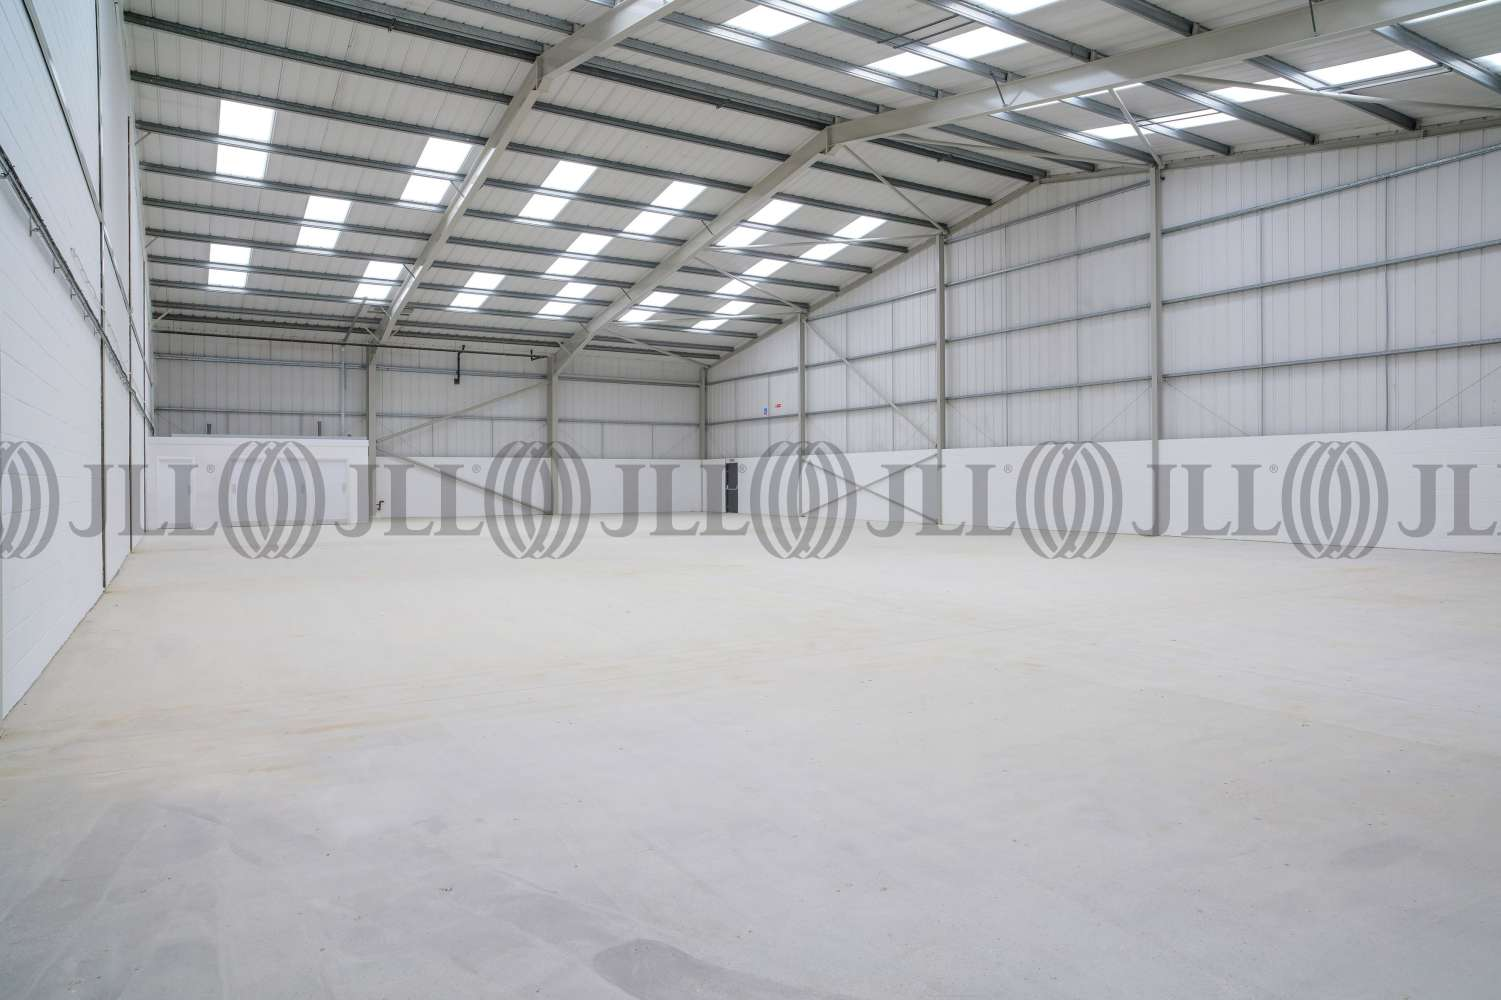 Industrial Epsom, KT19 9QQ - Units 1, 2 and 3 Blenheim Trade Centre